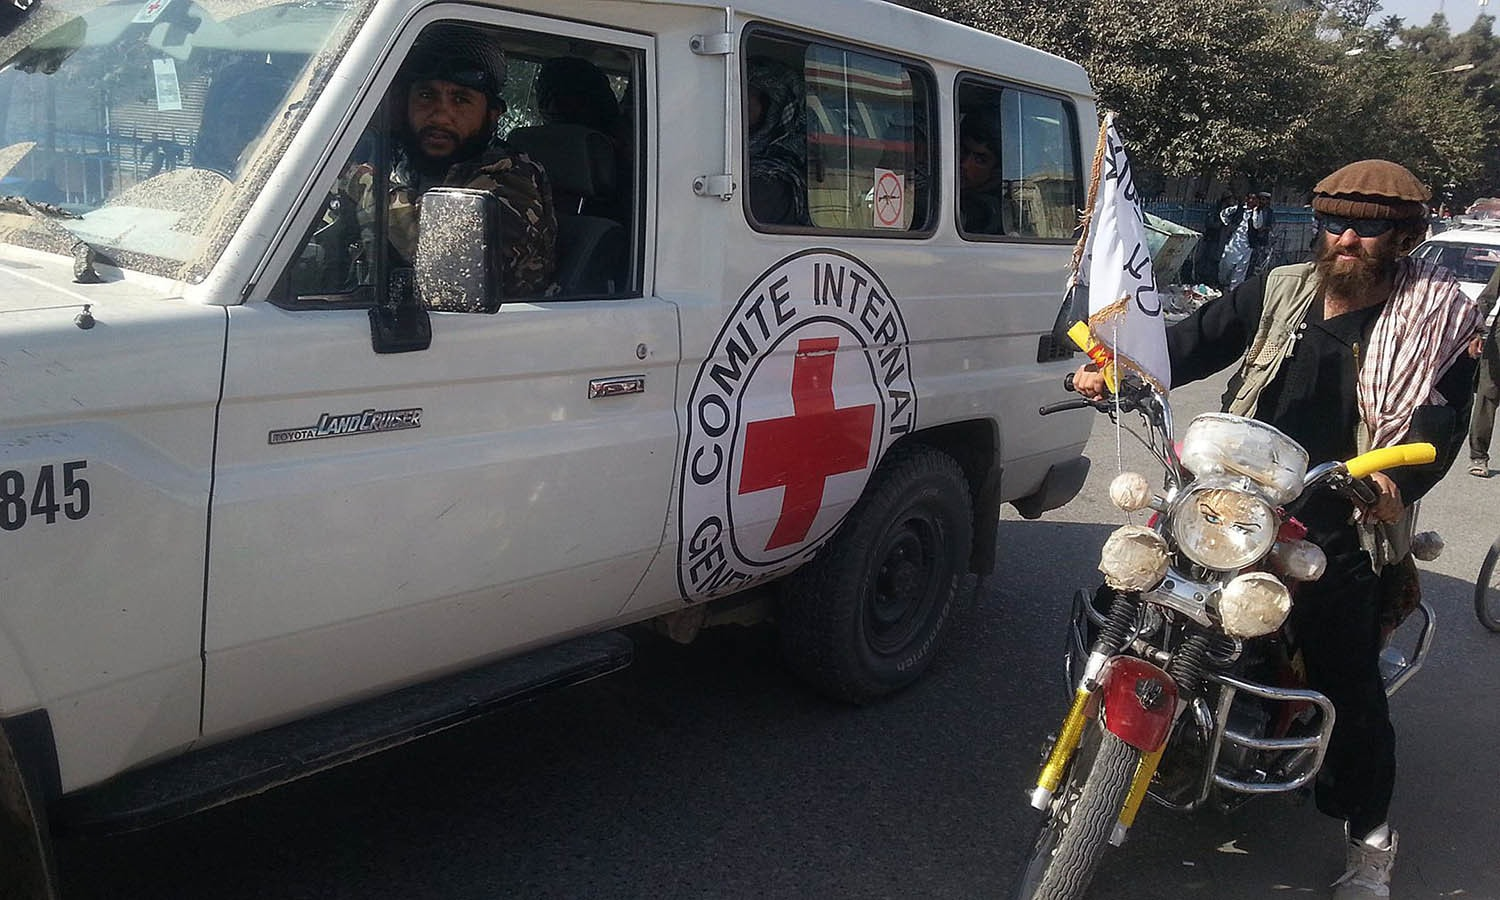 Taliban fighters are seen in an International Commitee of the Red Cross (ICRC) vehicle a day after the insurgents overran the strategic northern city of Kunduz. — AFP